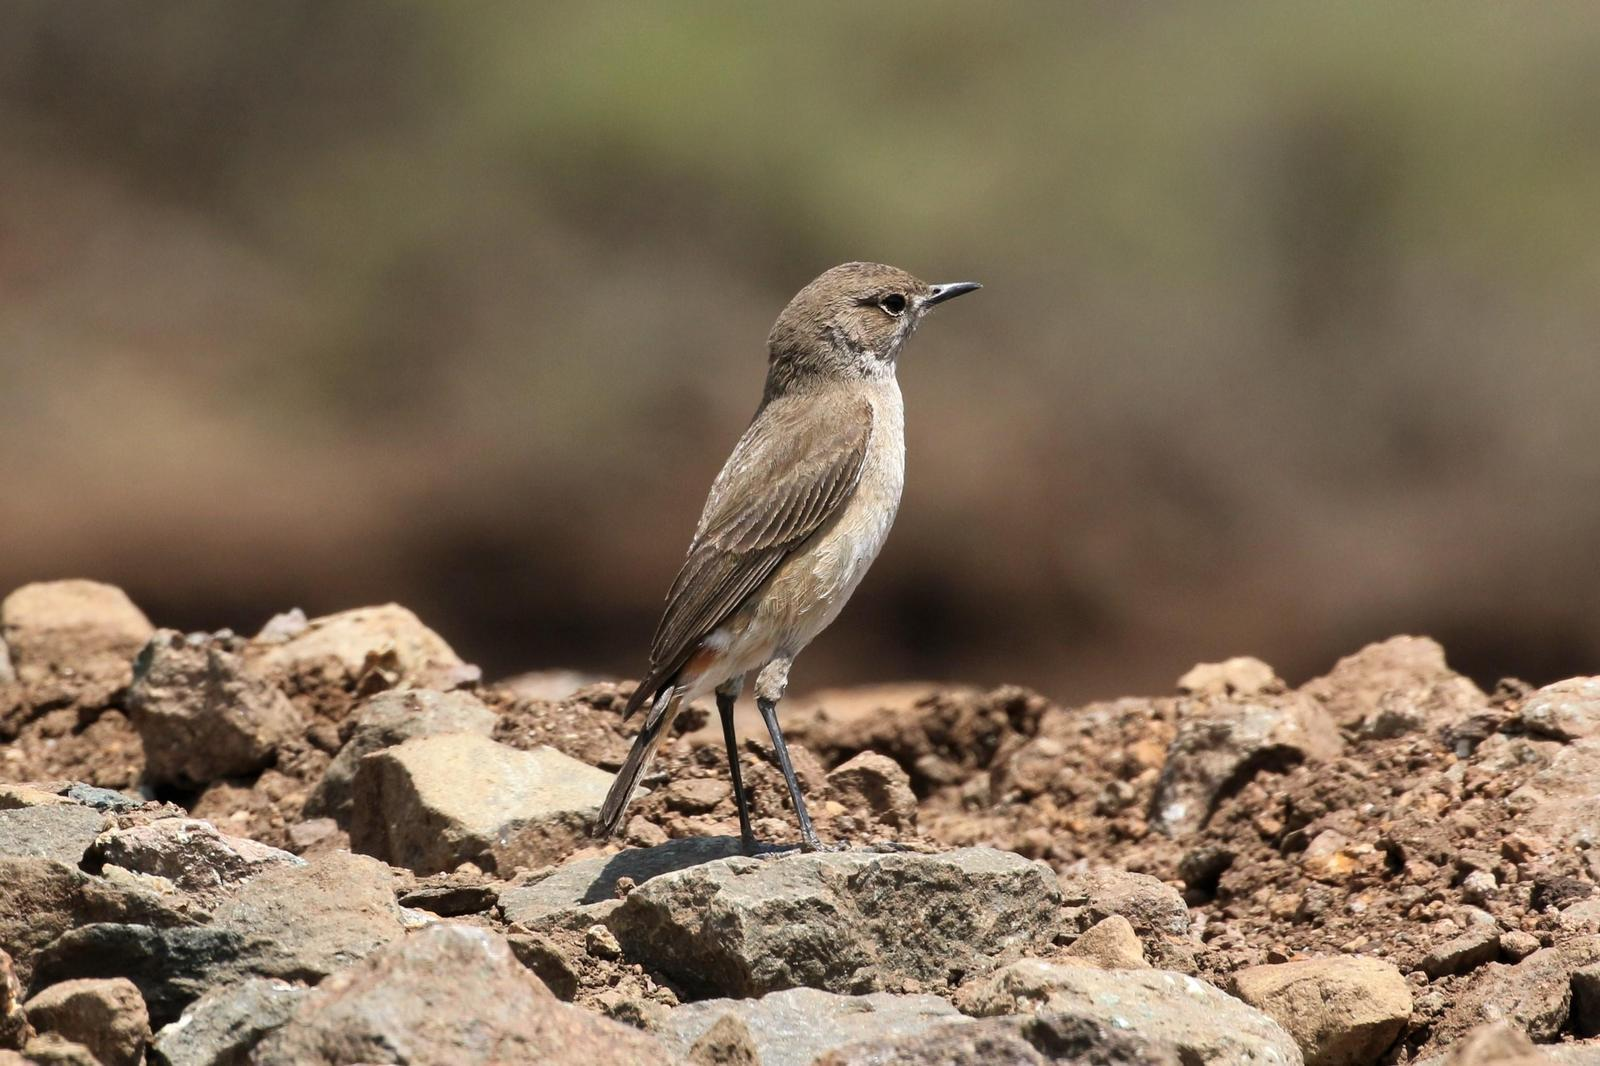 Sickle-winged Chat Photo by Richard Jeffers